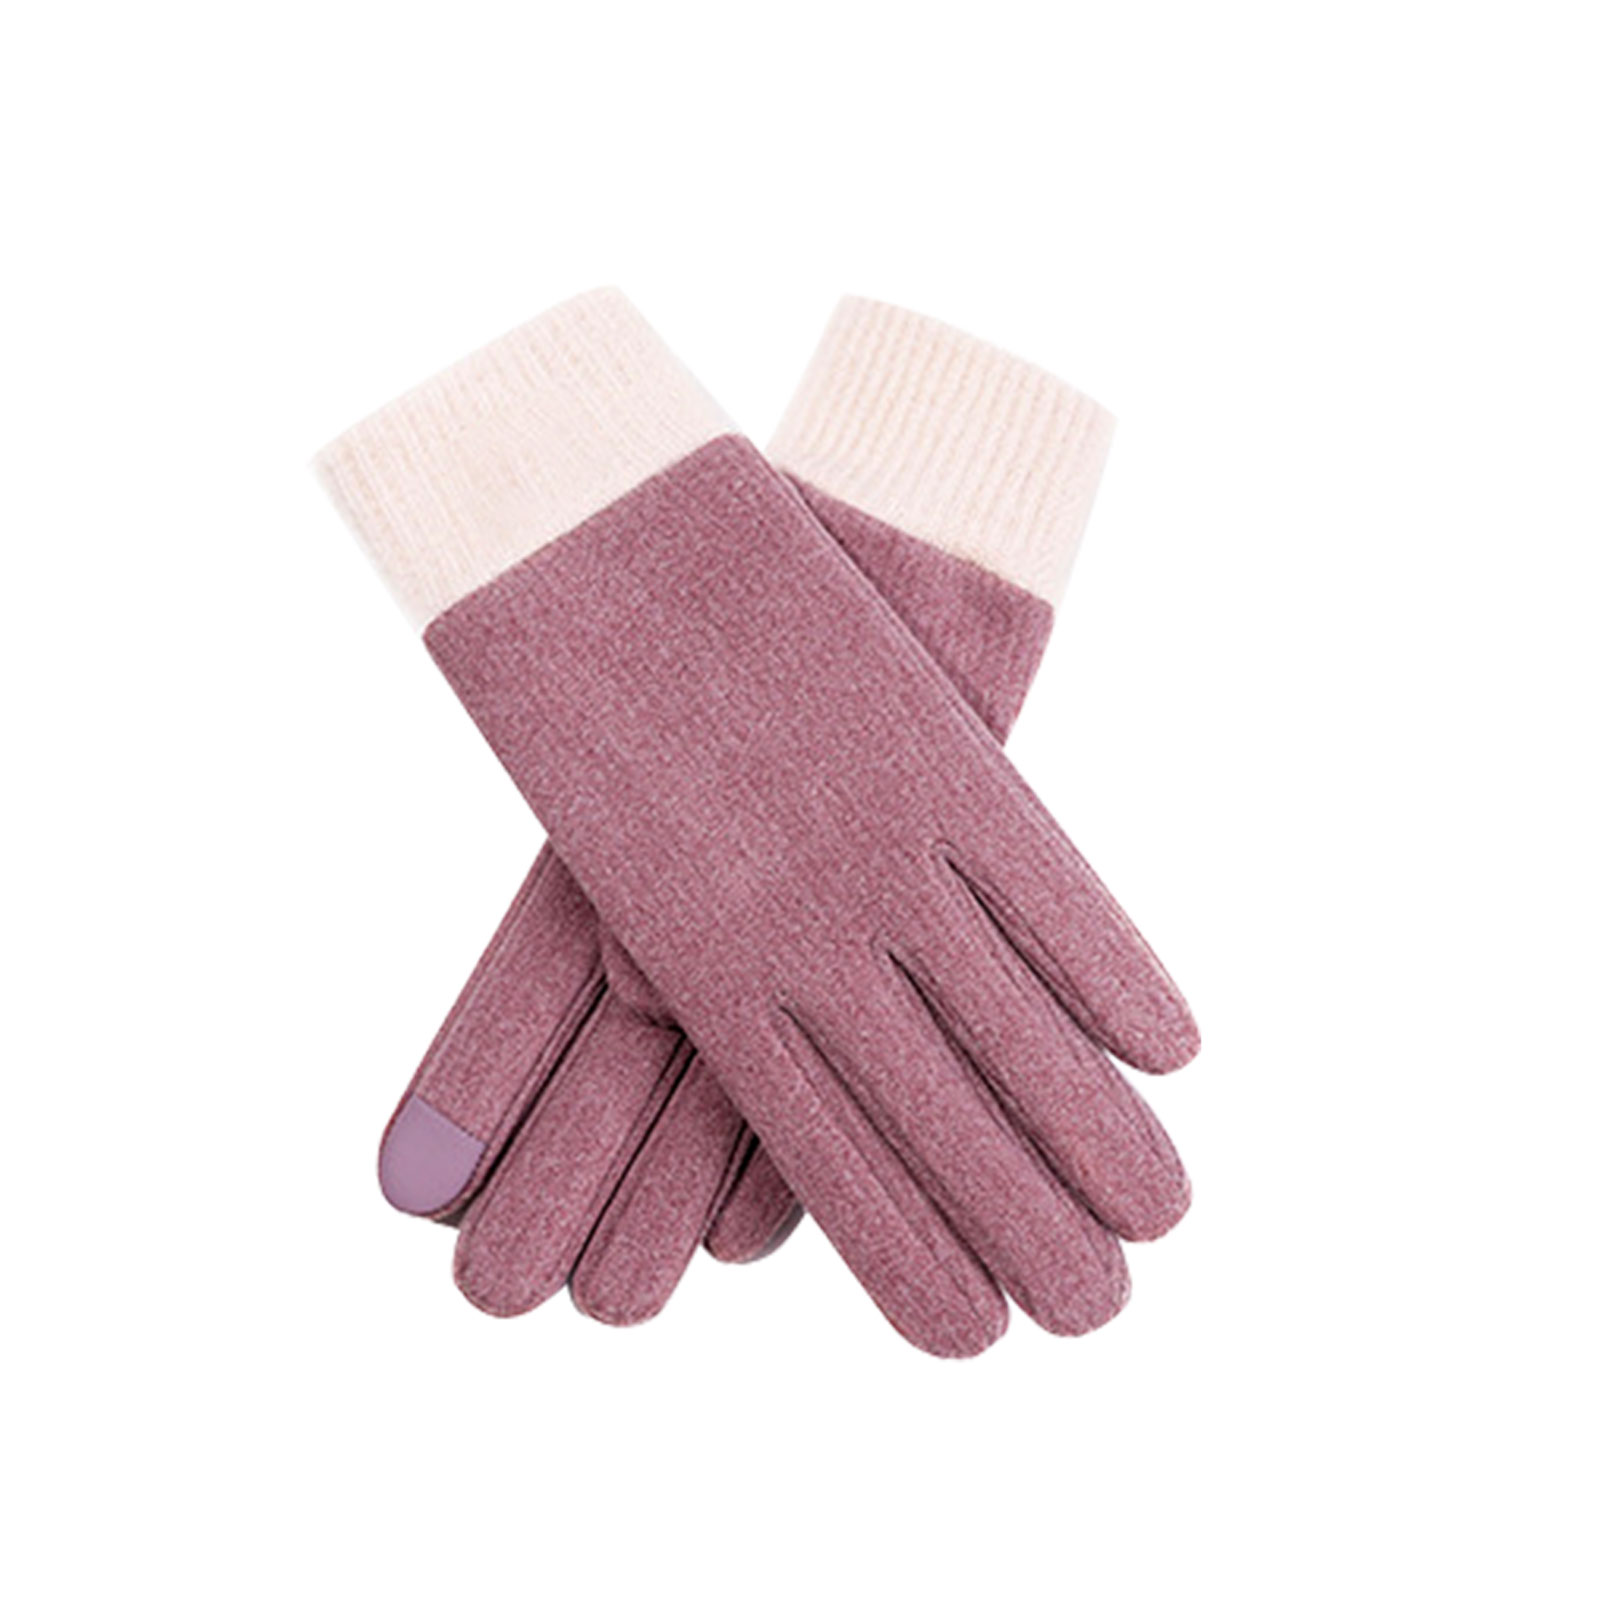 1pair Outdoor Sport Full Finger Ladies Skiing Women Gloves Self Heating Thick Soft Mittens Keep Warm Stretch Autumn Winter